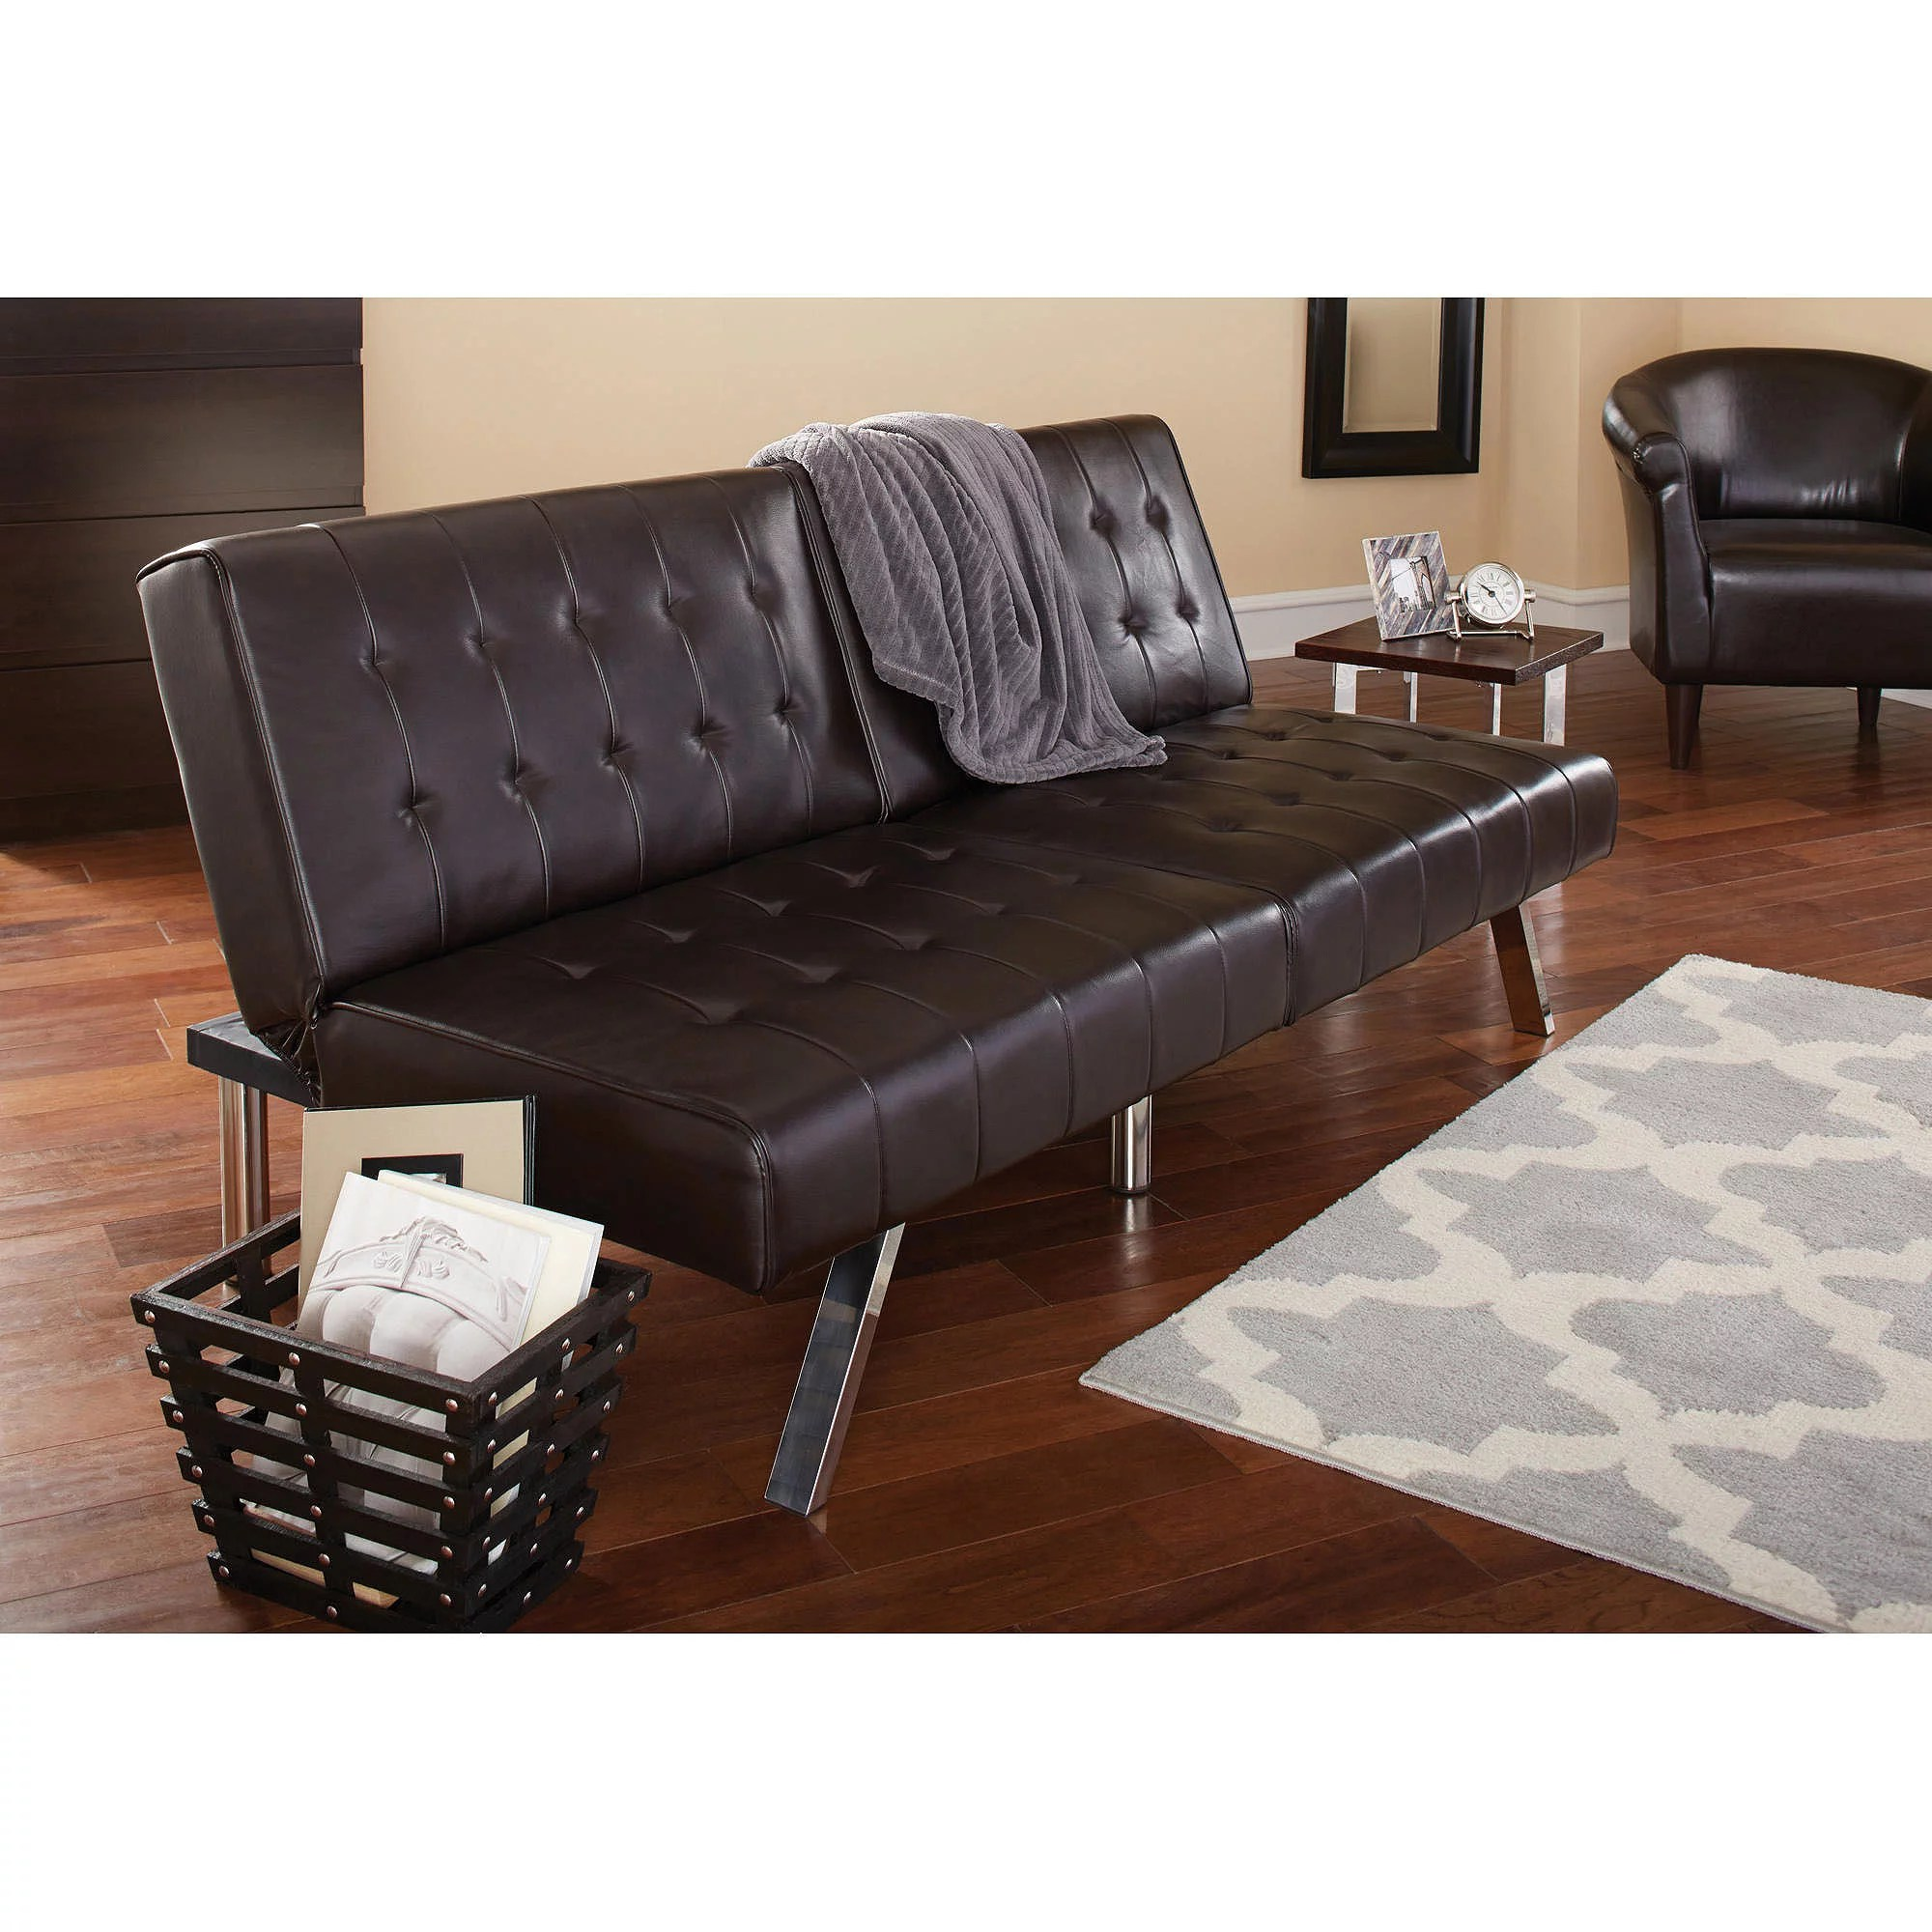 Mini Futon Walmart Sofa Beds Target Target Futons Sofa Beds Walmart  Mainstays Morgan Faux Leather Tufted